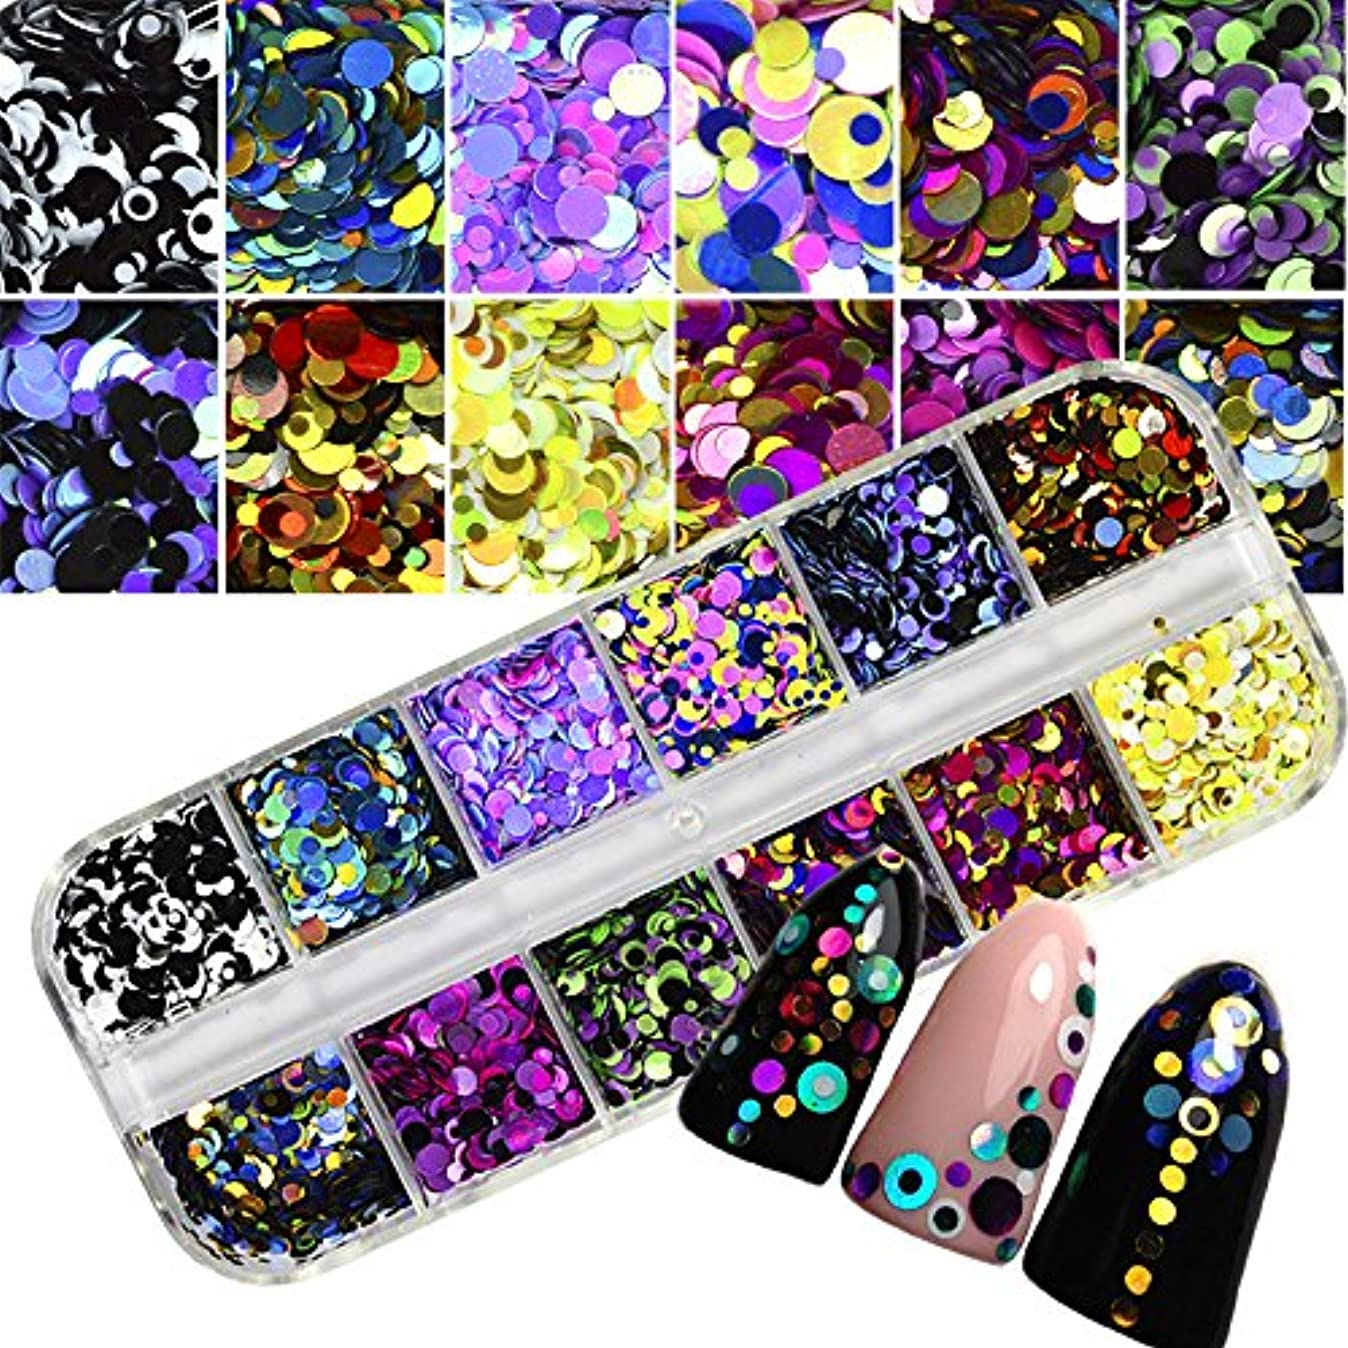 前文守銭奴一節1 Set Dazzling Round Nail Glitter Sequins Dust Mixed 12 Grids 1/2/3mm DIY Charm Polish Flakes Decorations Manicure...